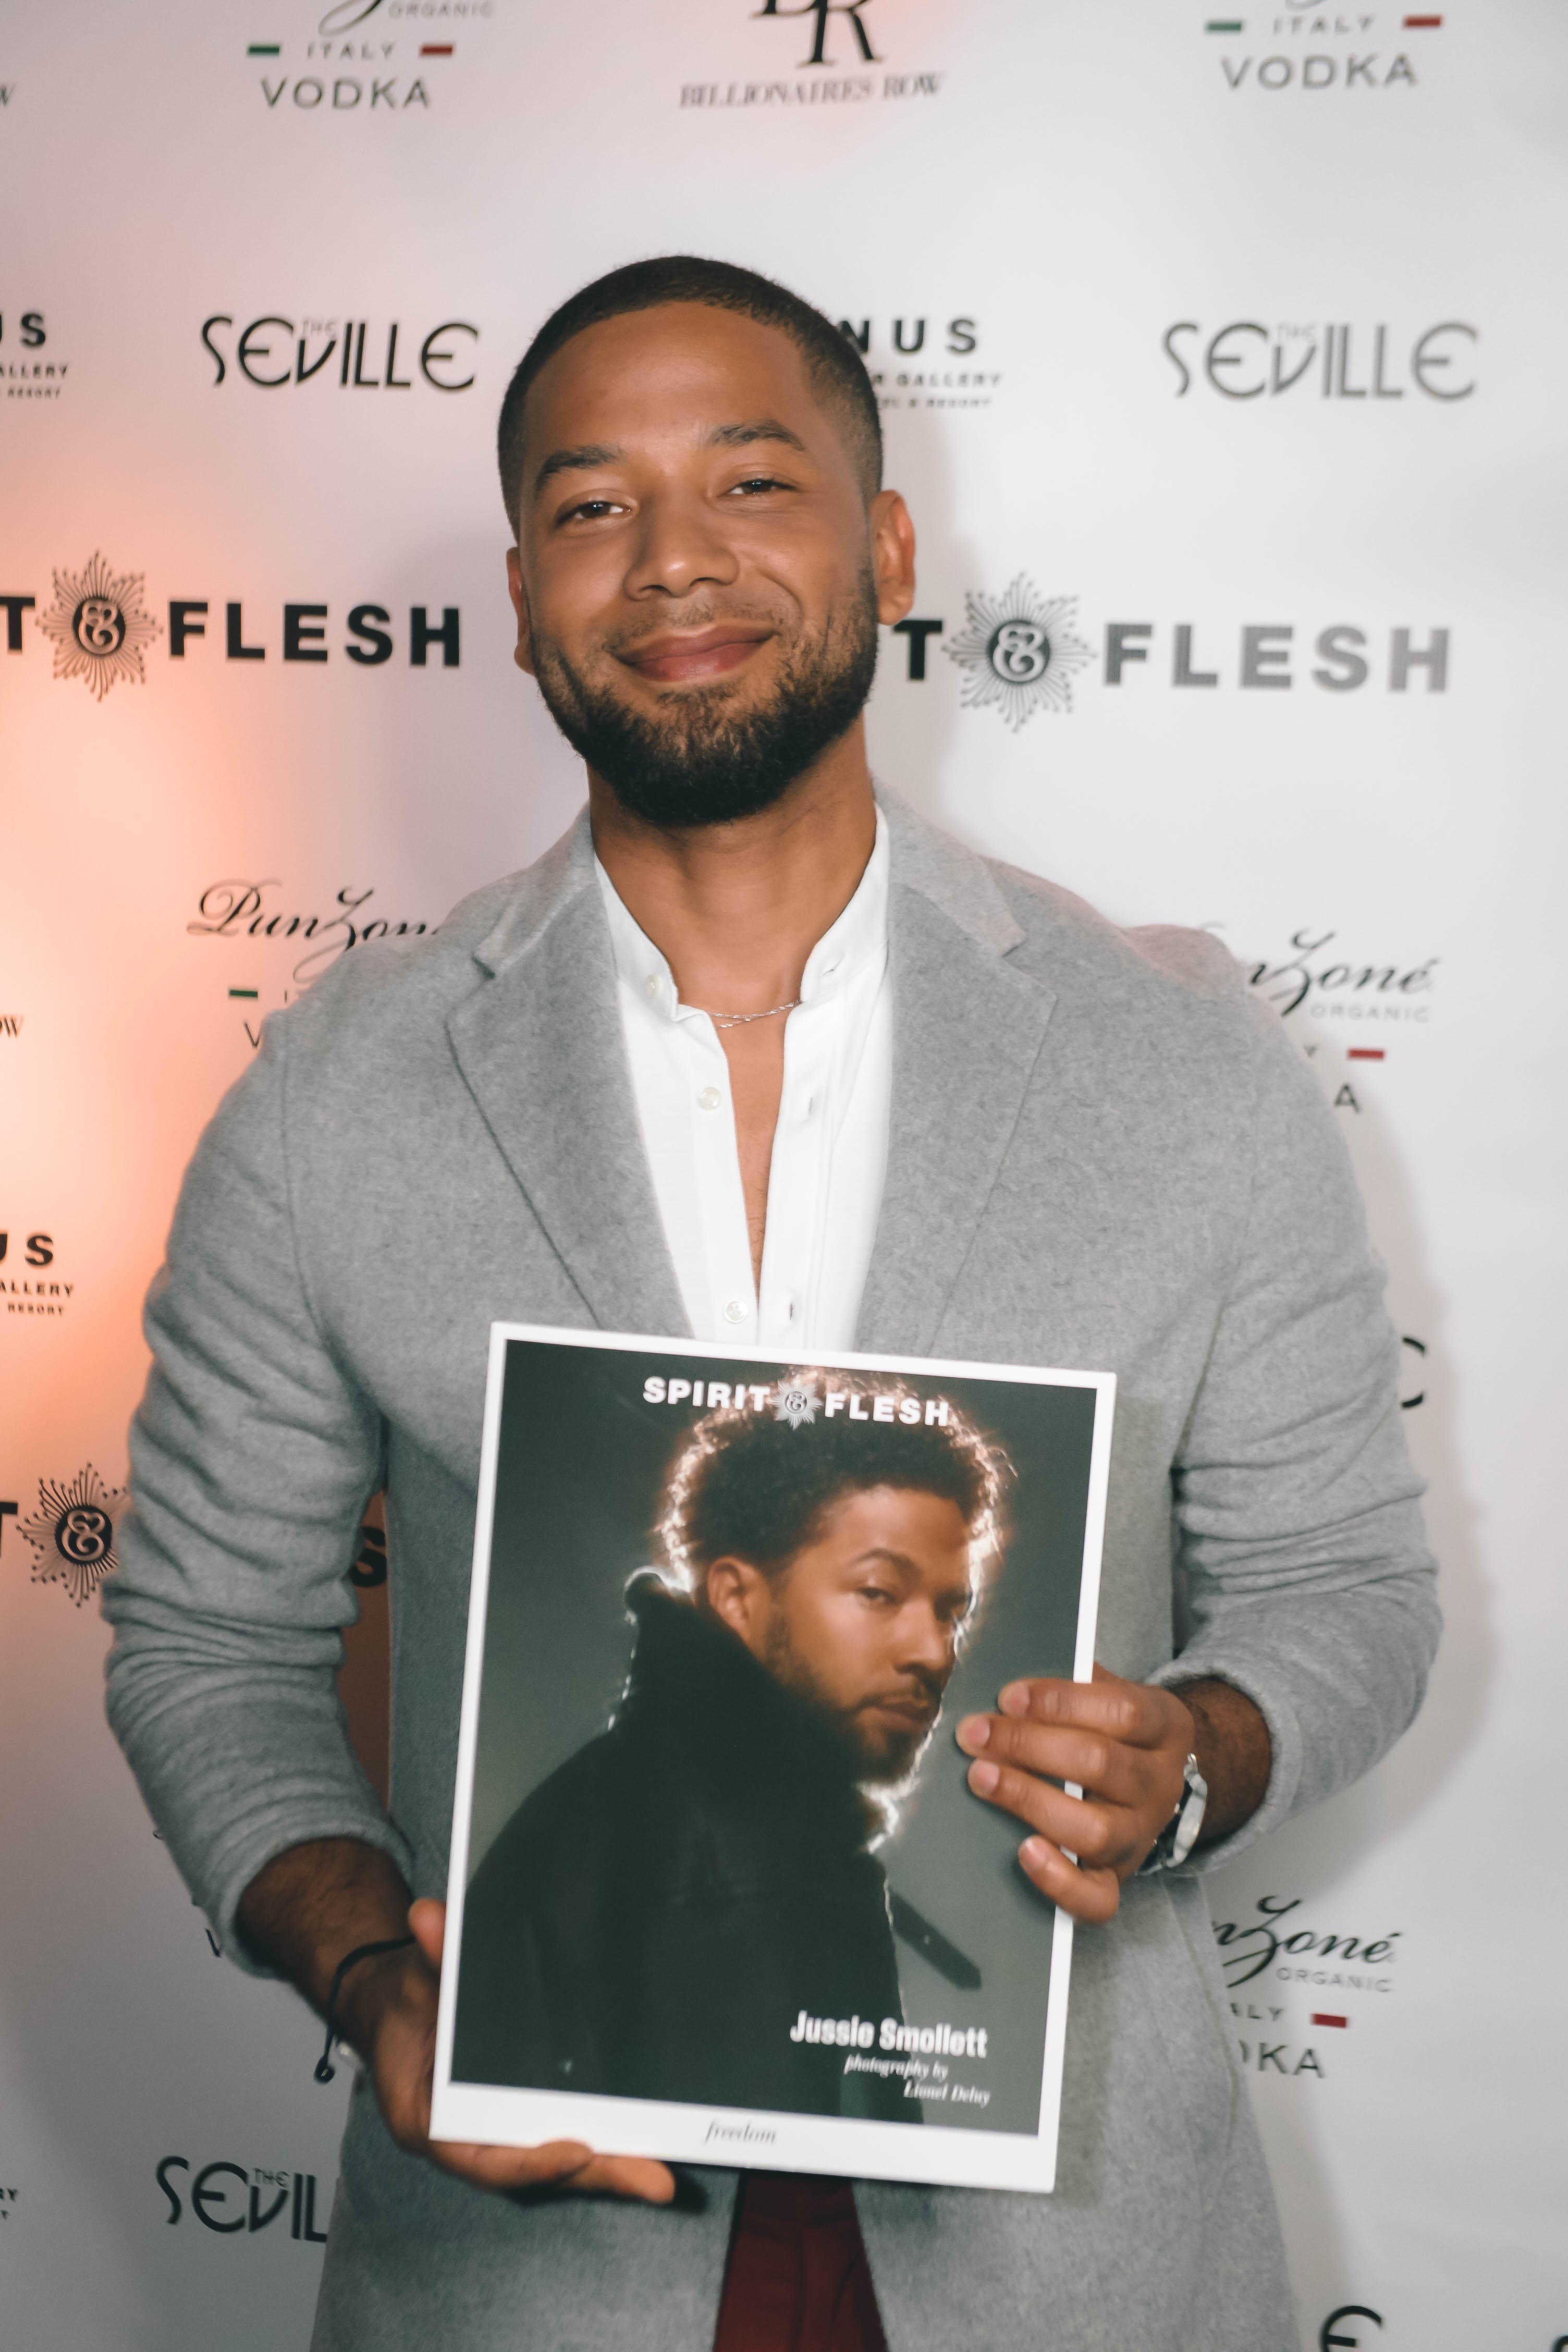 Spirit & Flesh Magazine Jussie Smollett cover event by Chuck Marcus